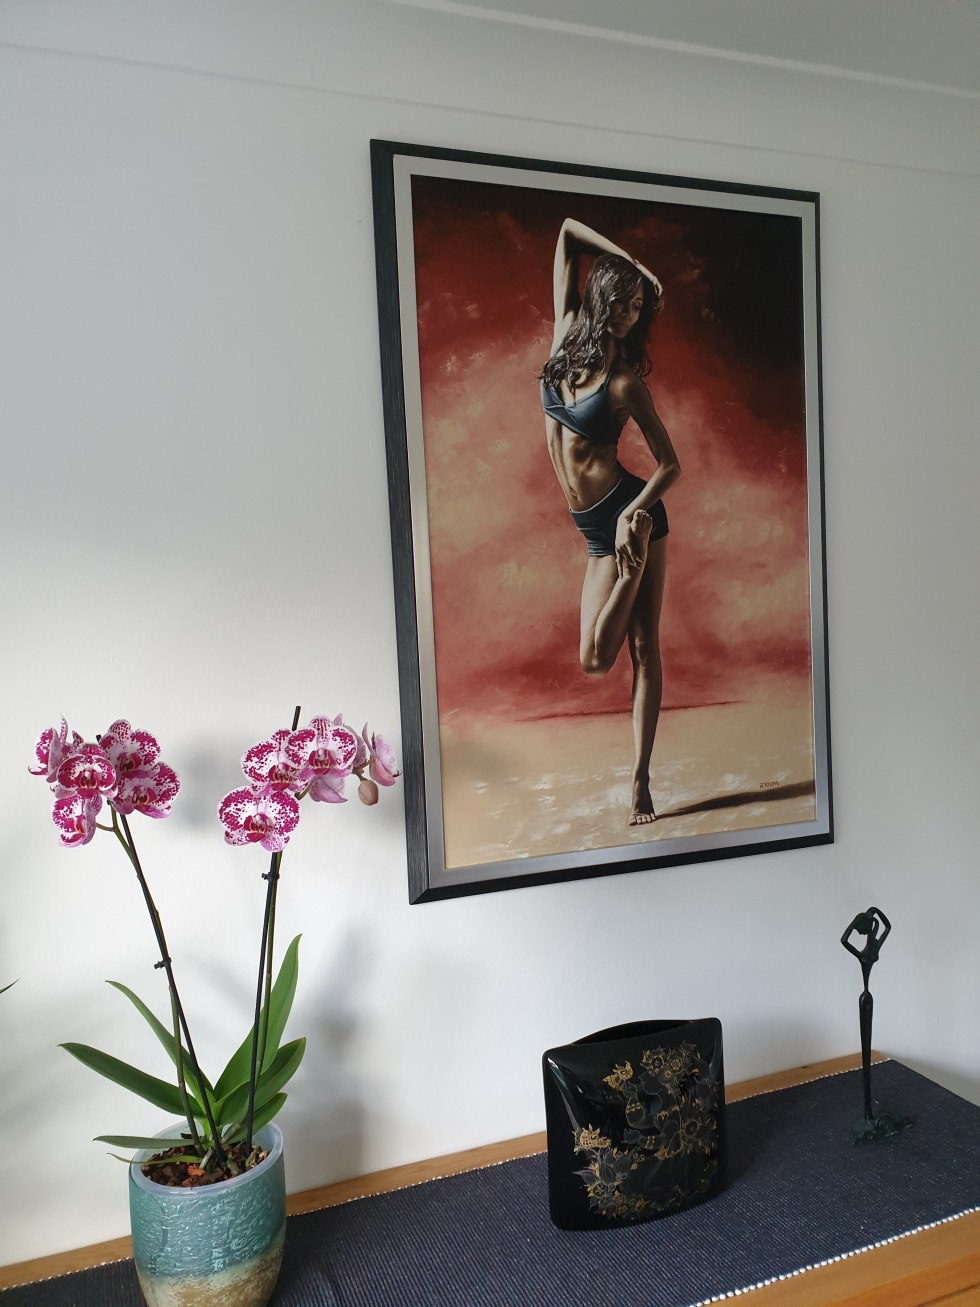 Sultry Dancer framed and hung in my home for reference Confidence